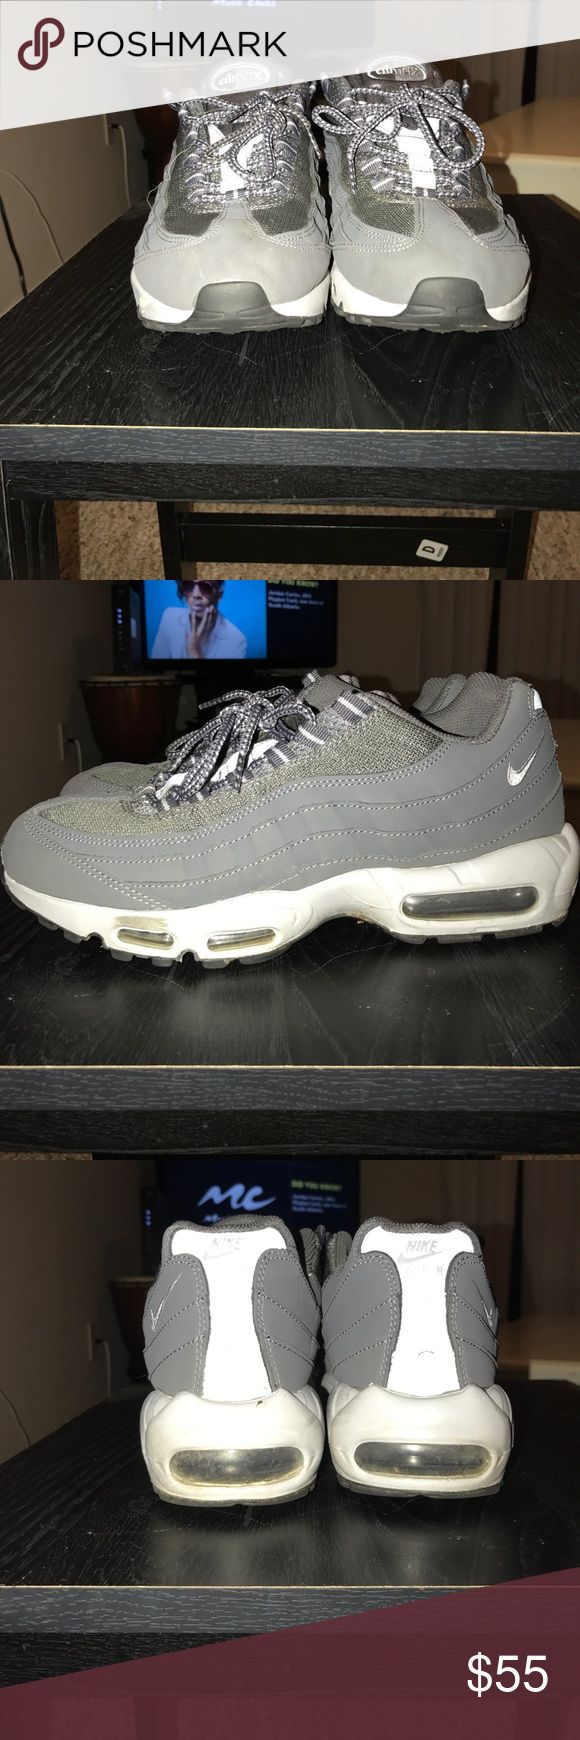 Nike Air Max . Men Size 10 Nike Air Max Size 10 . Air Max 95's . Grey Nike Shoes Sneakers https://tmblr.co/ZmD_Wd2QMvZhb